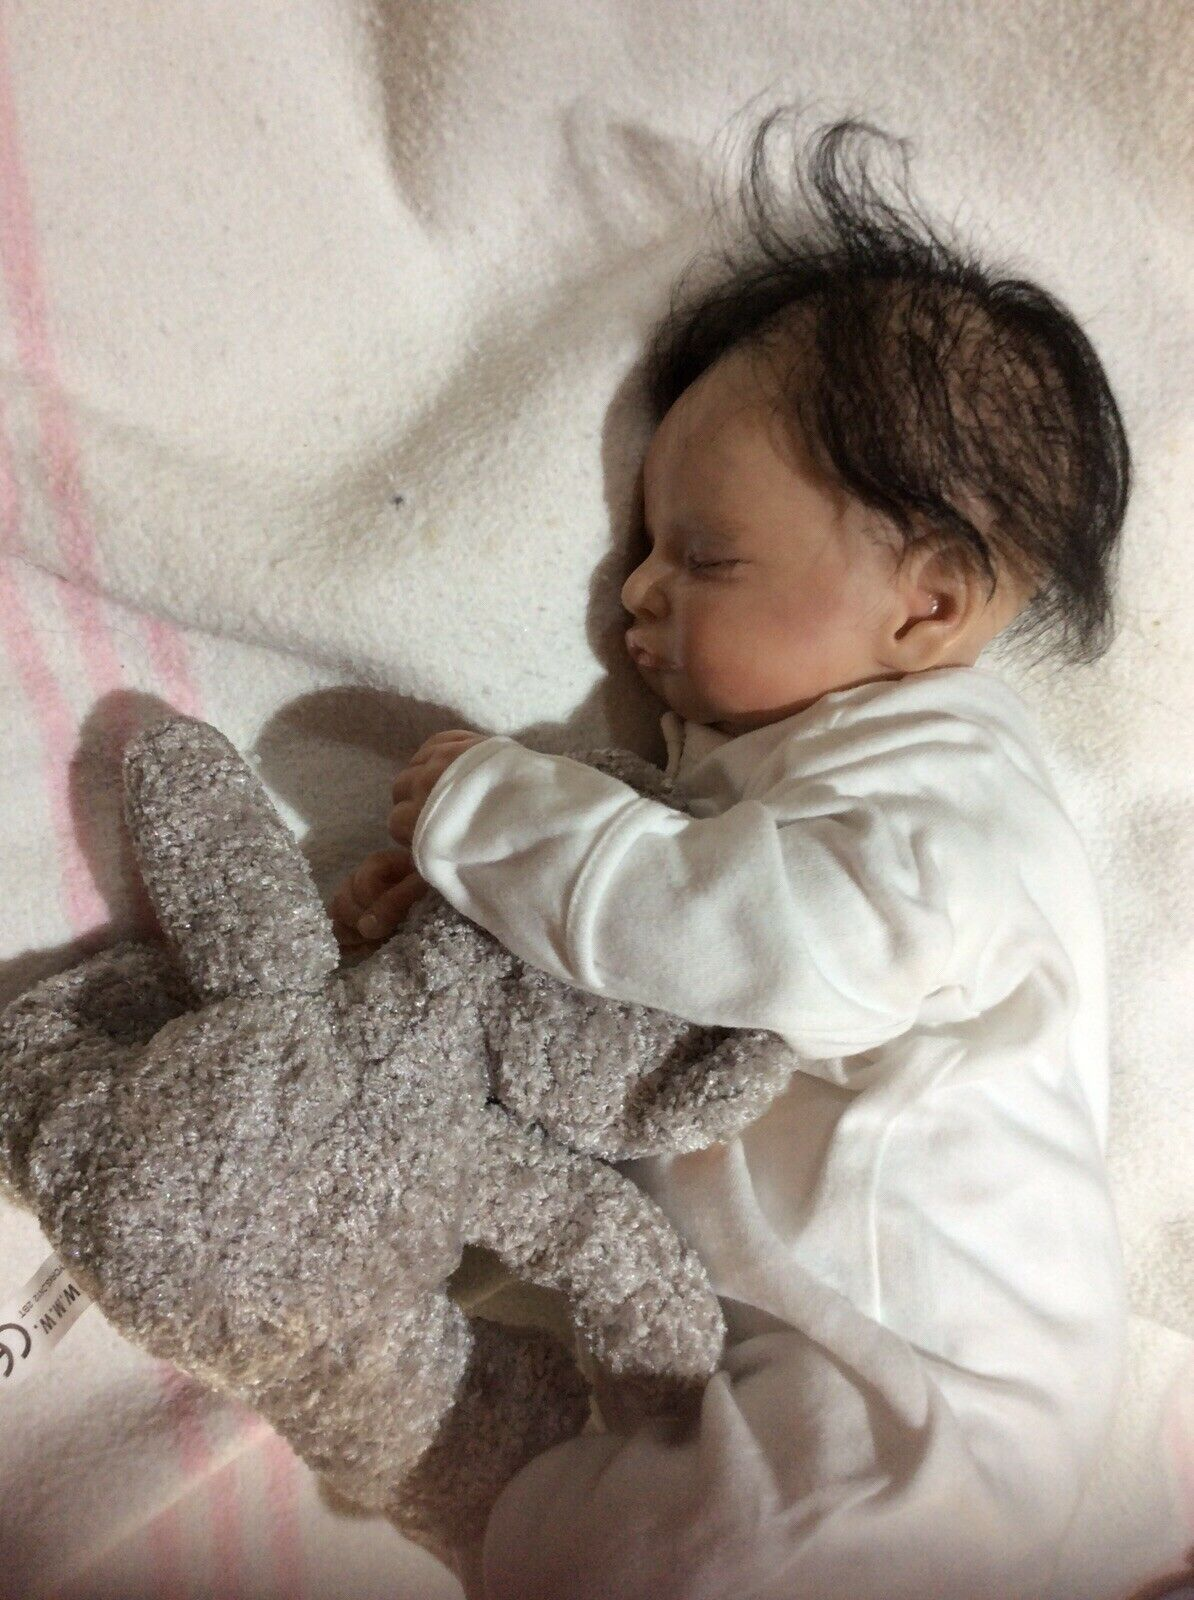 A Beautiful reborn baby Girl, Brand New Baby ....By Olga Auer.